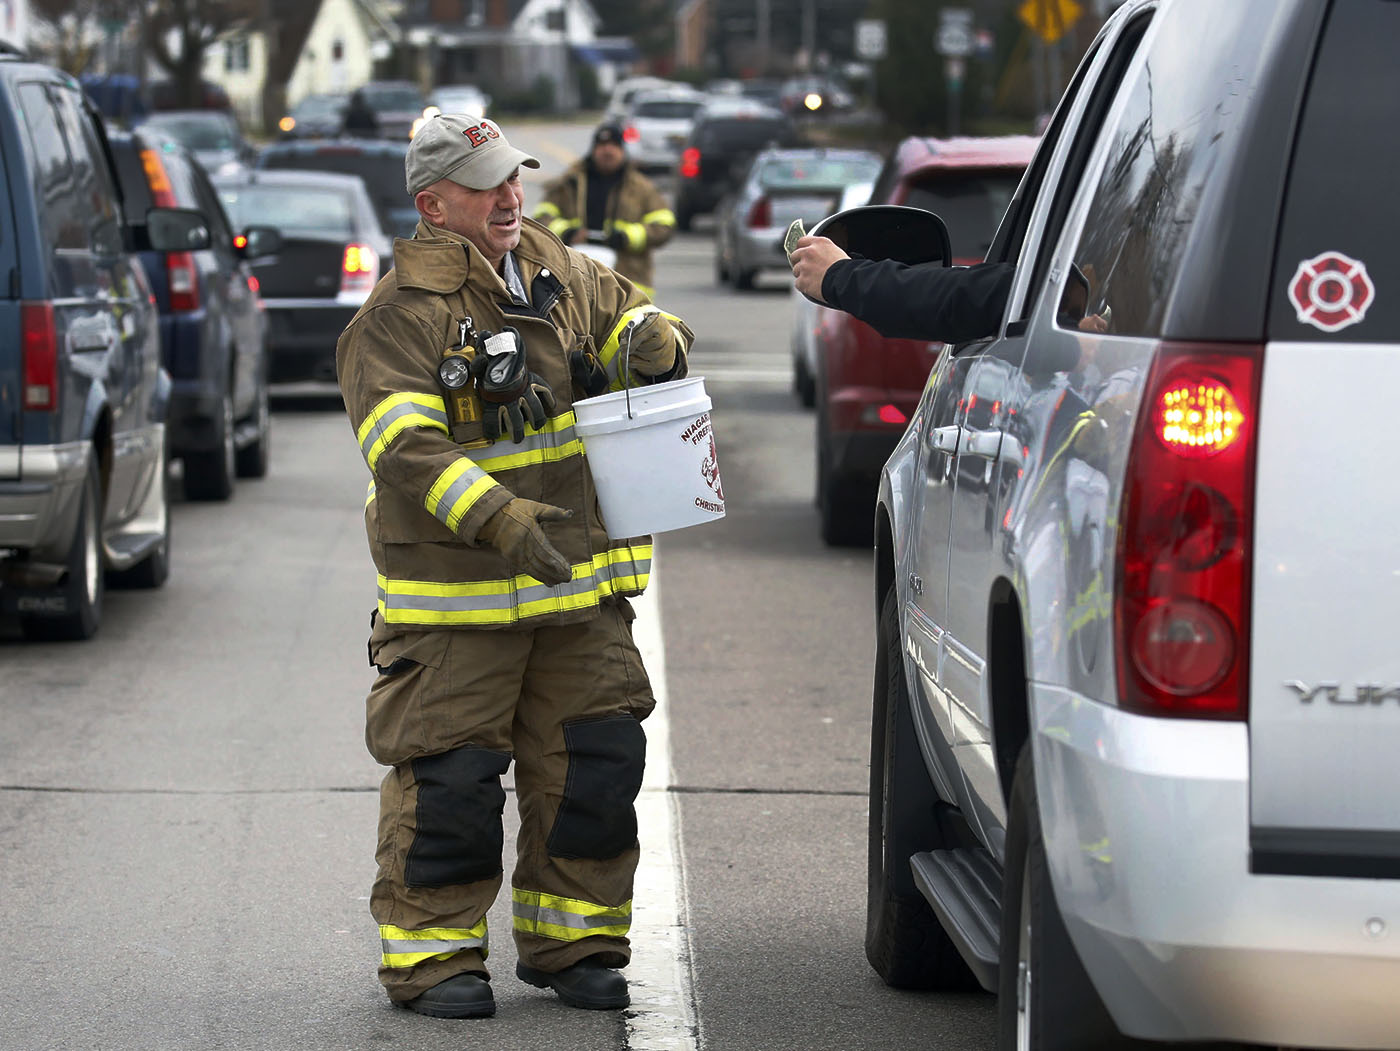 Mike Perri, a 26 year veteran of the City of Niagara Falls, NY fire department, solicits donations to their annual toy and food drive for the needy at the intersection of Niagara Falls Blvd. and Military in Niagara Falls, NY onFriday, Nov. 25, 2016. (Robert Kirkham/Buffalo News)